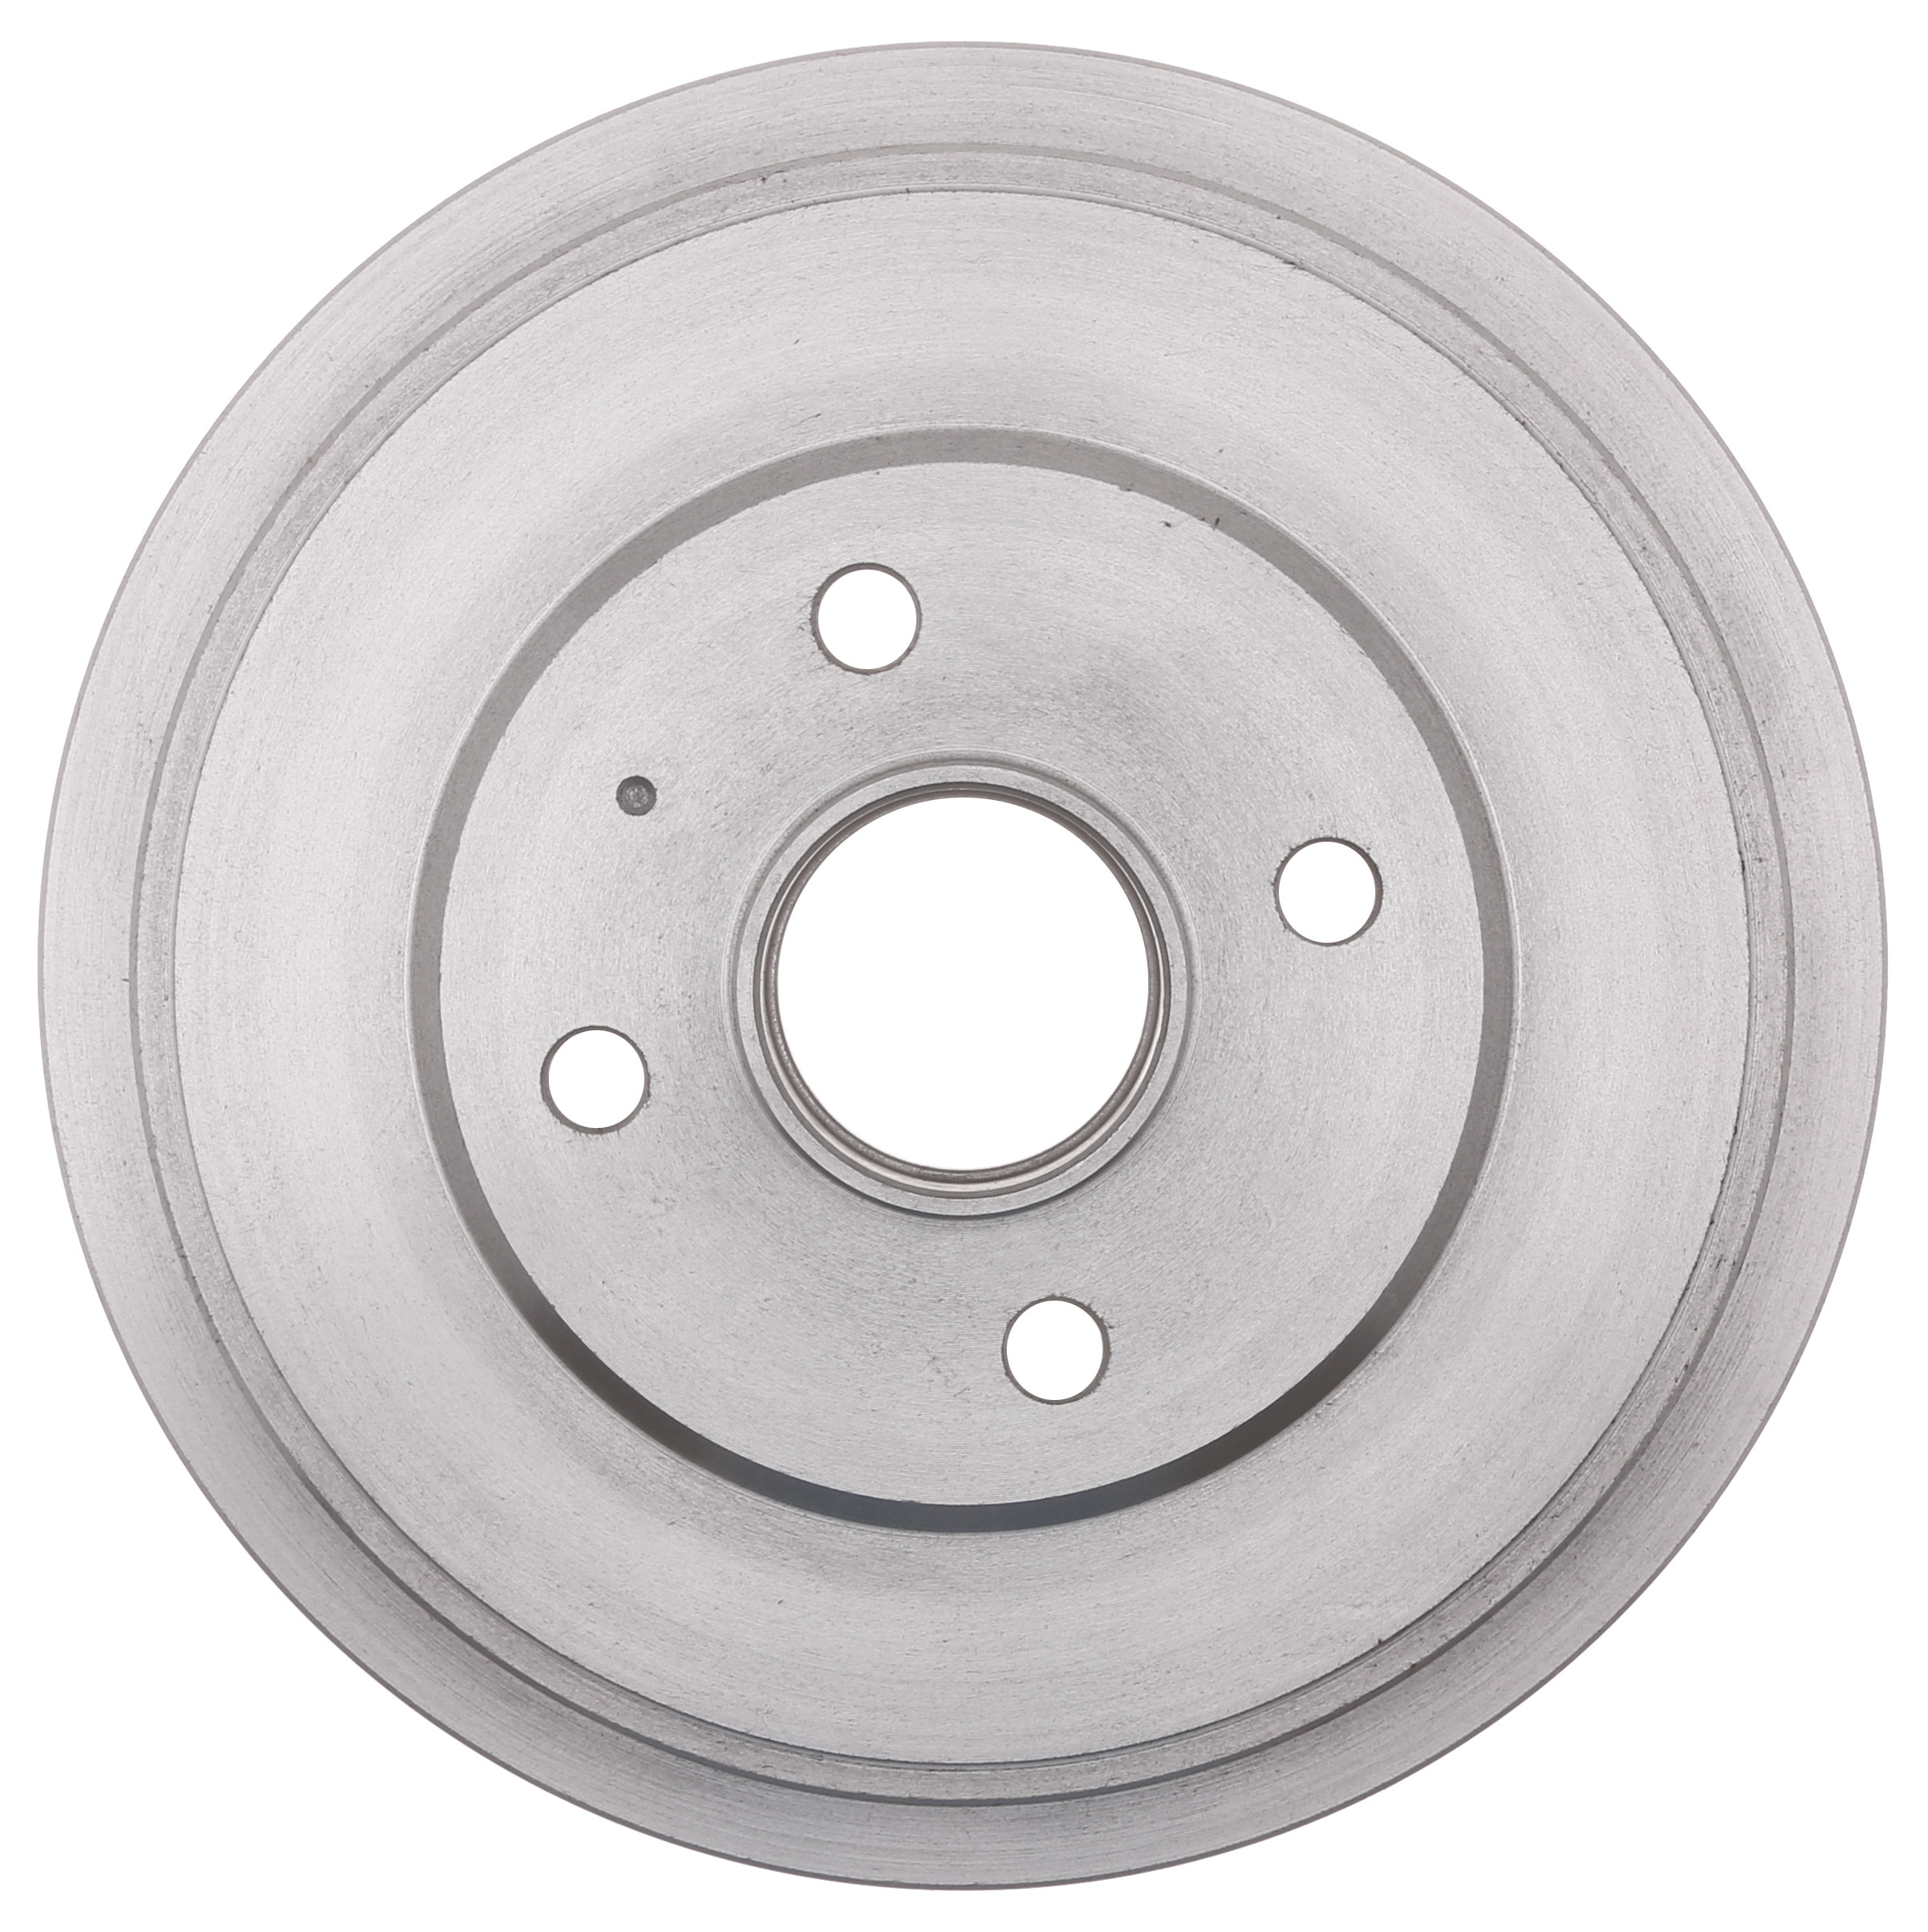 ACDELCO ADVANTAGE - Brake Drum - DCD 18B7836A